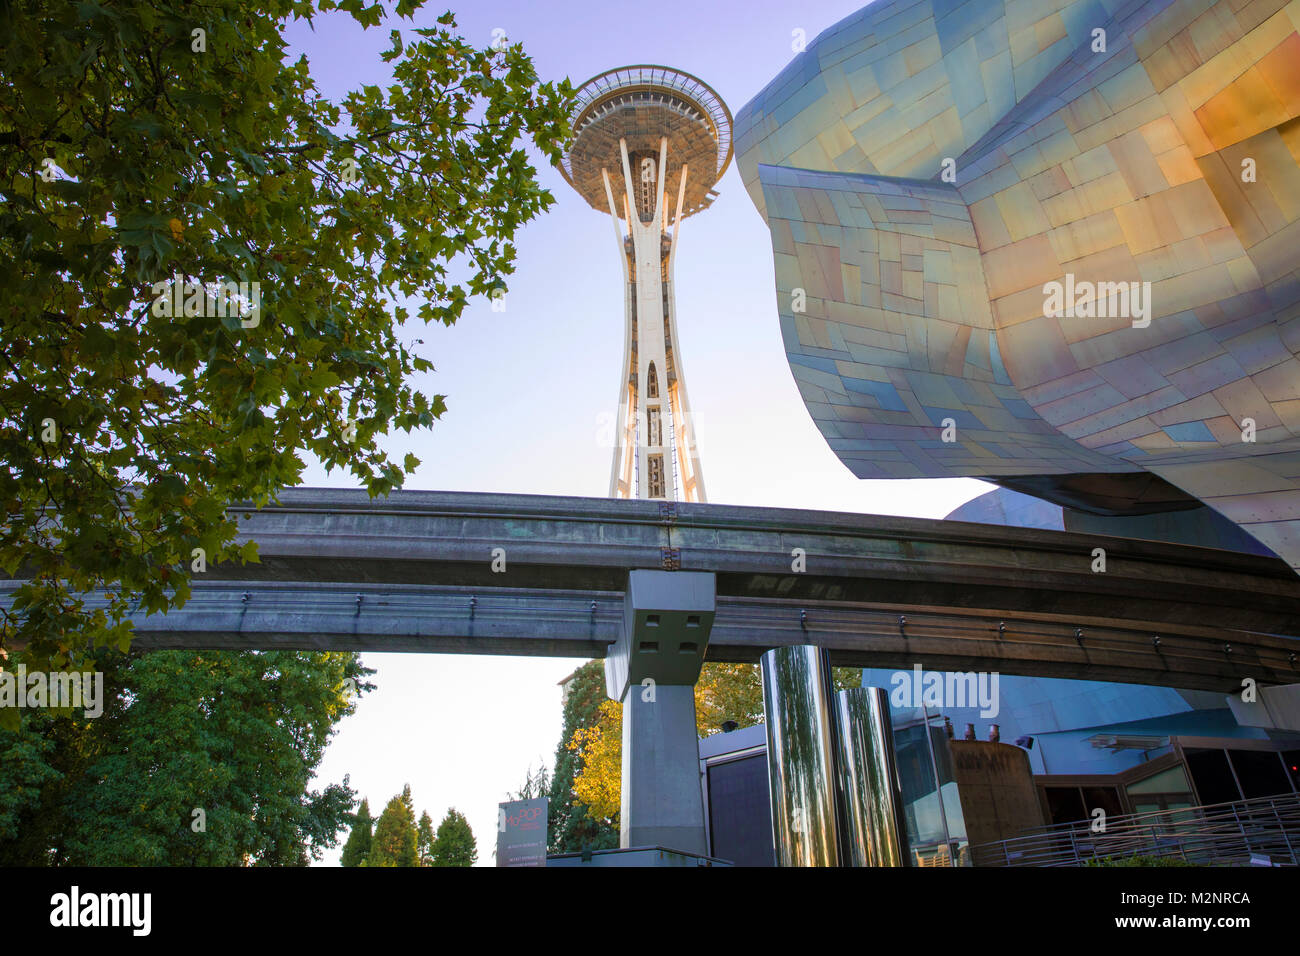 Seattle, Washington State Stockbild